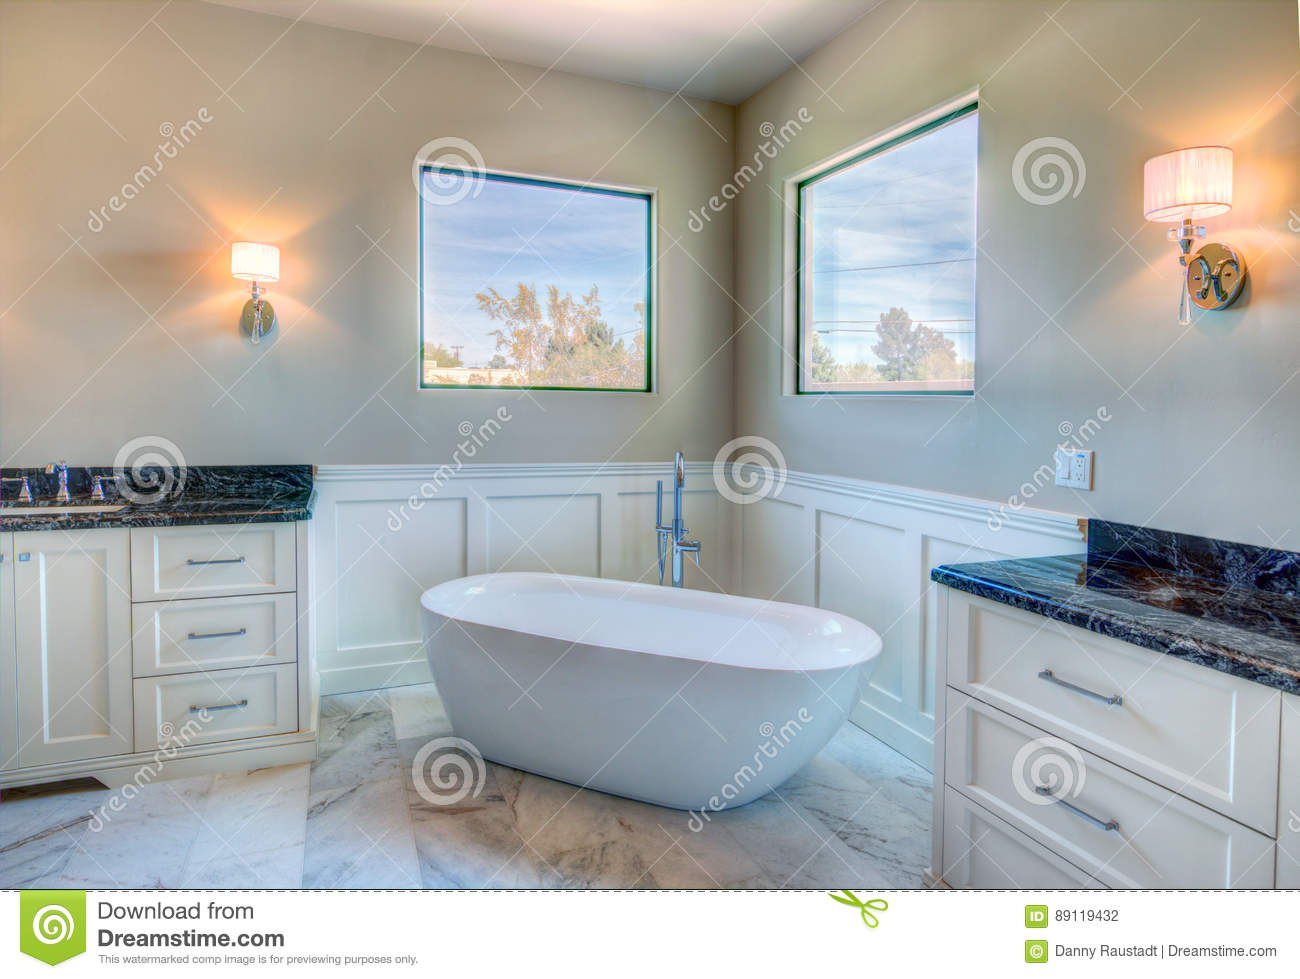 New Modern Home Mansion Master Bath Stock Photo - Image: 89119432